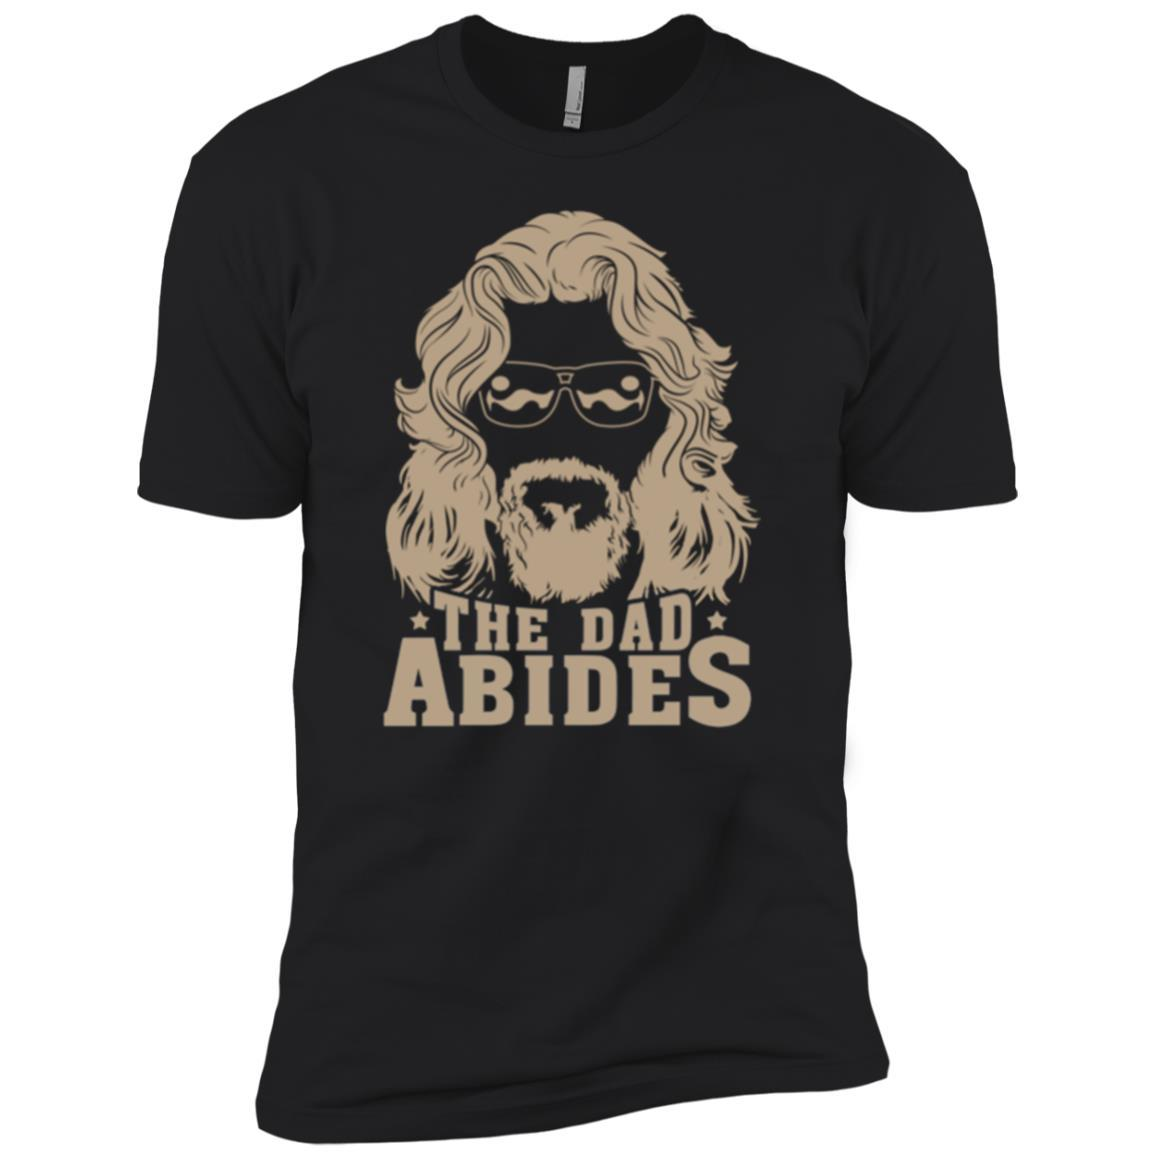 The Dad Abides Premium Tee